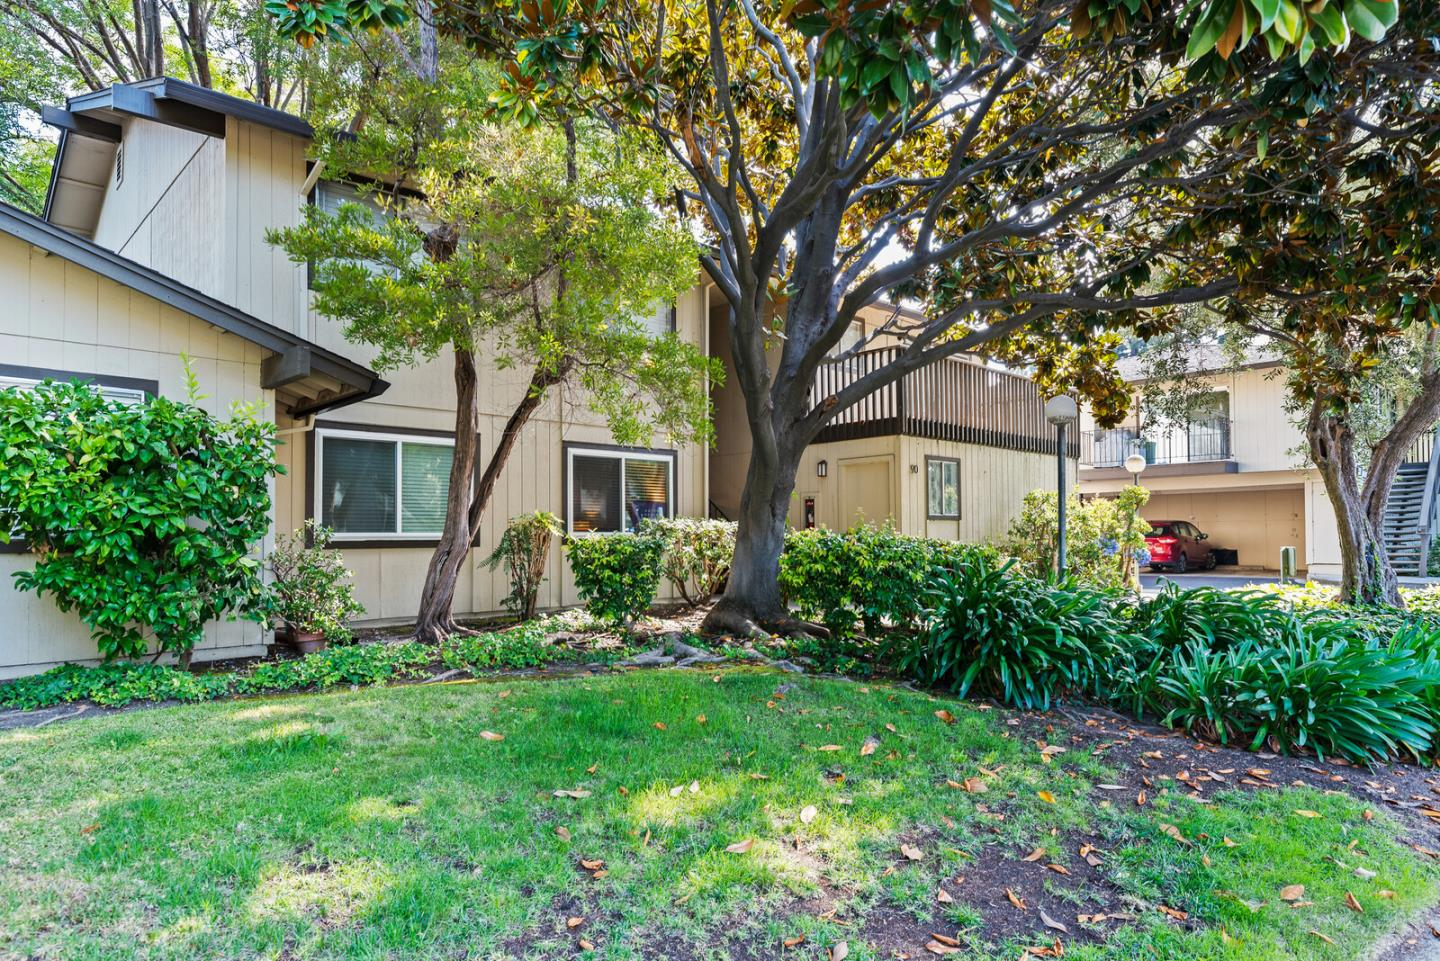 Enjoy the best of indoor/outdoor living in the heart of Silicon Valley with this cozy ground- floor condo with huge private patio. Located just minutes from downtown Mountain View, this home has easy access to highways 101, 237 and 85 and is also within striking distance of the Google satellite office, NASA, the light rail, numerous walking and bike trails and much more! The property is part of a well-run HOA with low dues, clubhouse, heated pool, playground and lots of green spaces. Everything you need to live a comfortable lifestyle is all within reach of this great home! This property is a must see!  Virtual Open House 8/9 from 11am-12:45pm Zoom meeting ID 84986870114  https://us02web.zoom.us/j/9523354070?pwd=anh3dXU5S1ZPUEpPSzZqa0U5OUVBdz09&ct=t(EMAIL_CAMPAIGN_5_7_2020_9_5_COPY_02)&mc_cid=bf060f47e3&mc_eid=[UNIQID]